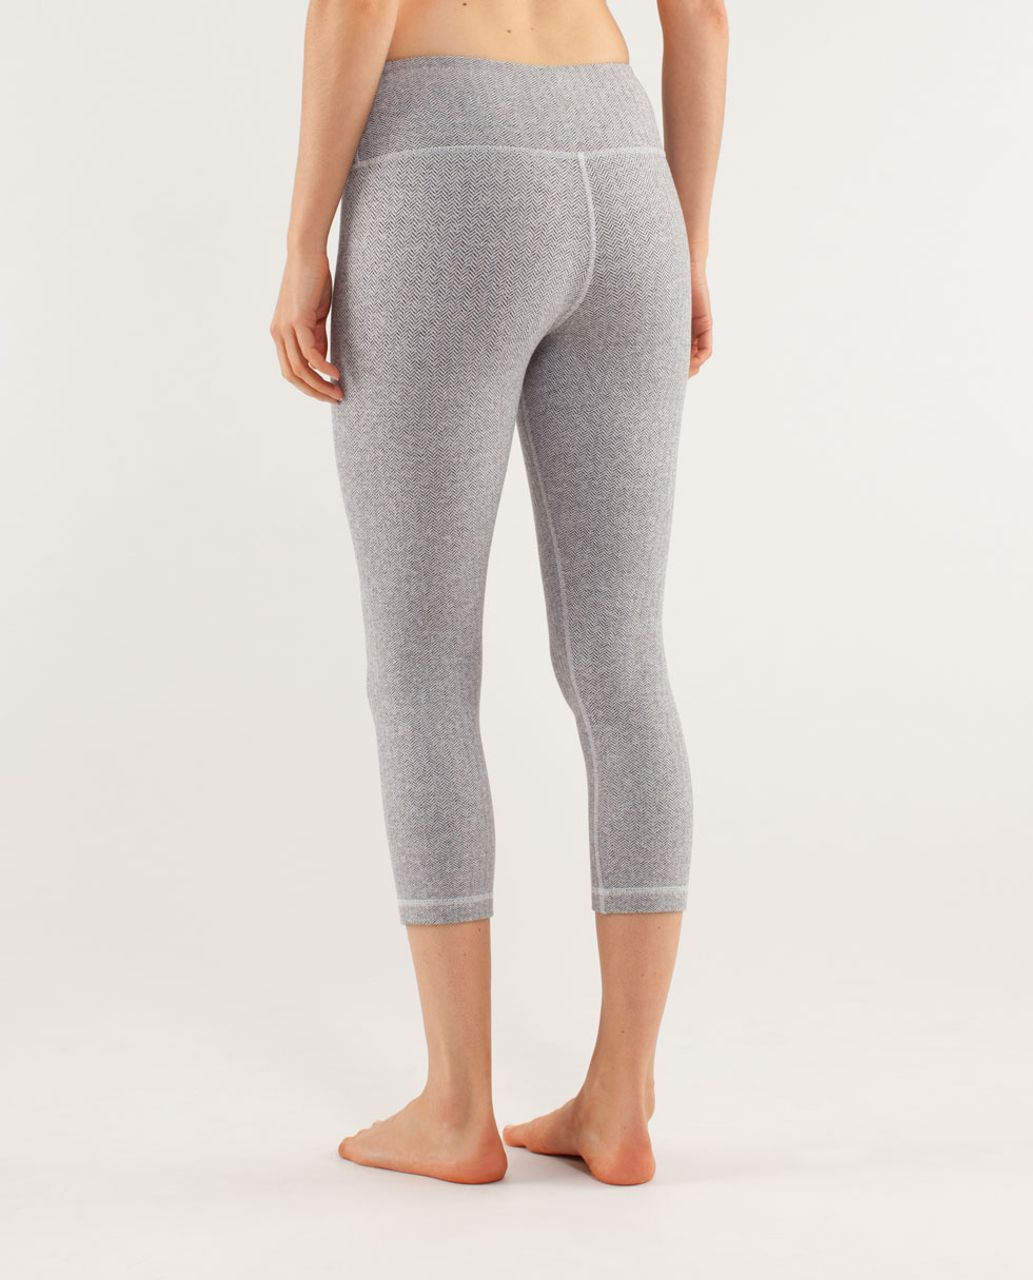 Lululemon Wunder Under Crop - Herringbone White Black